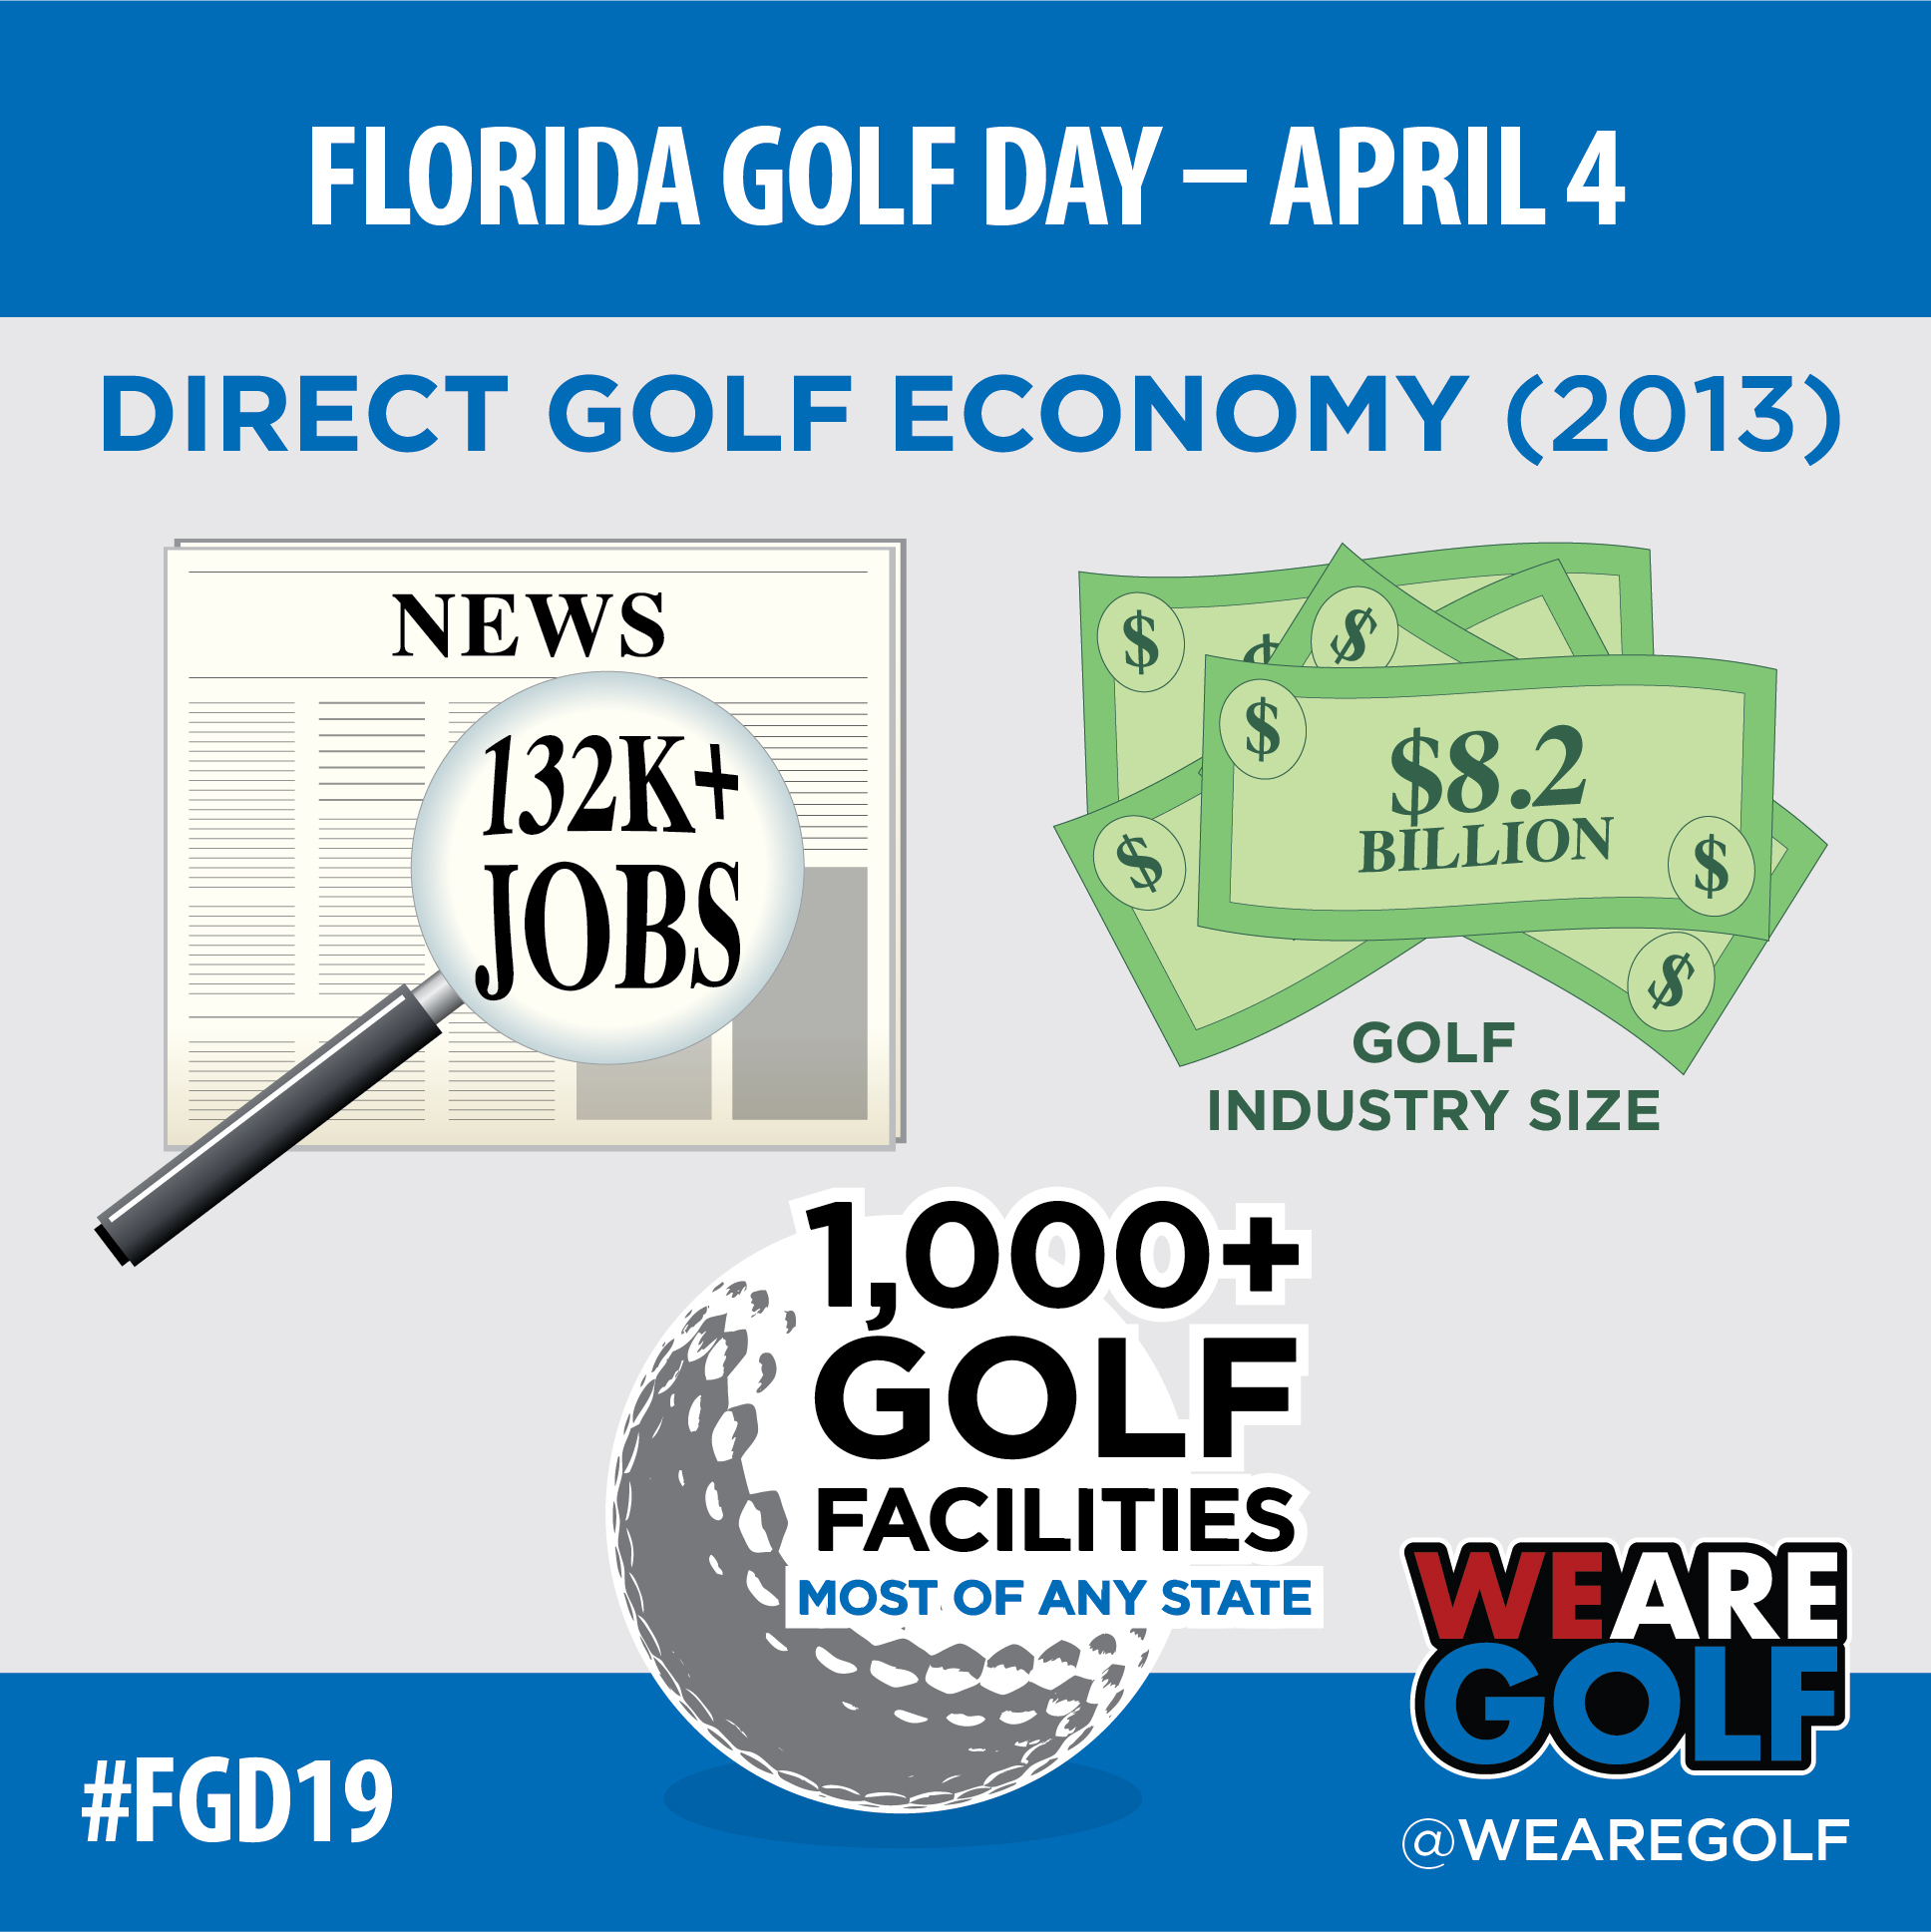 Florida Golf Day 2019